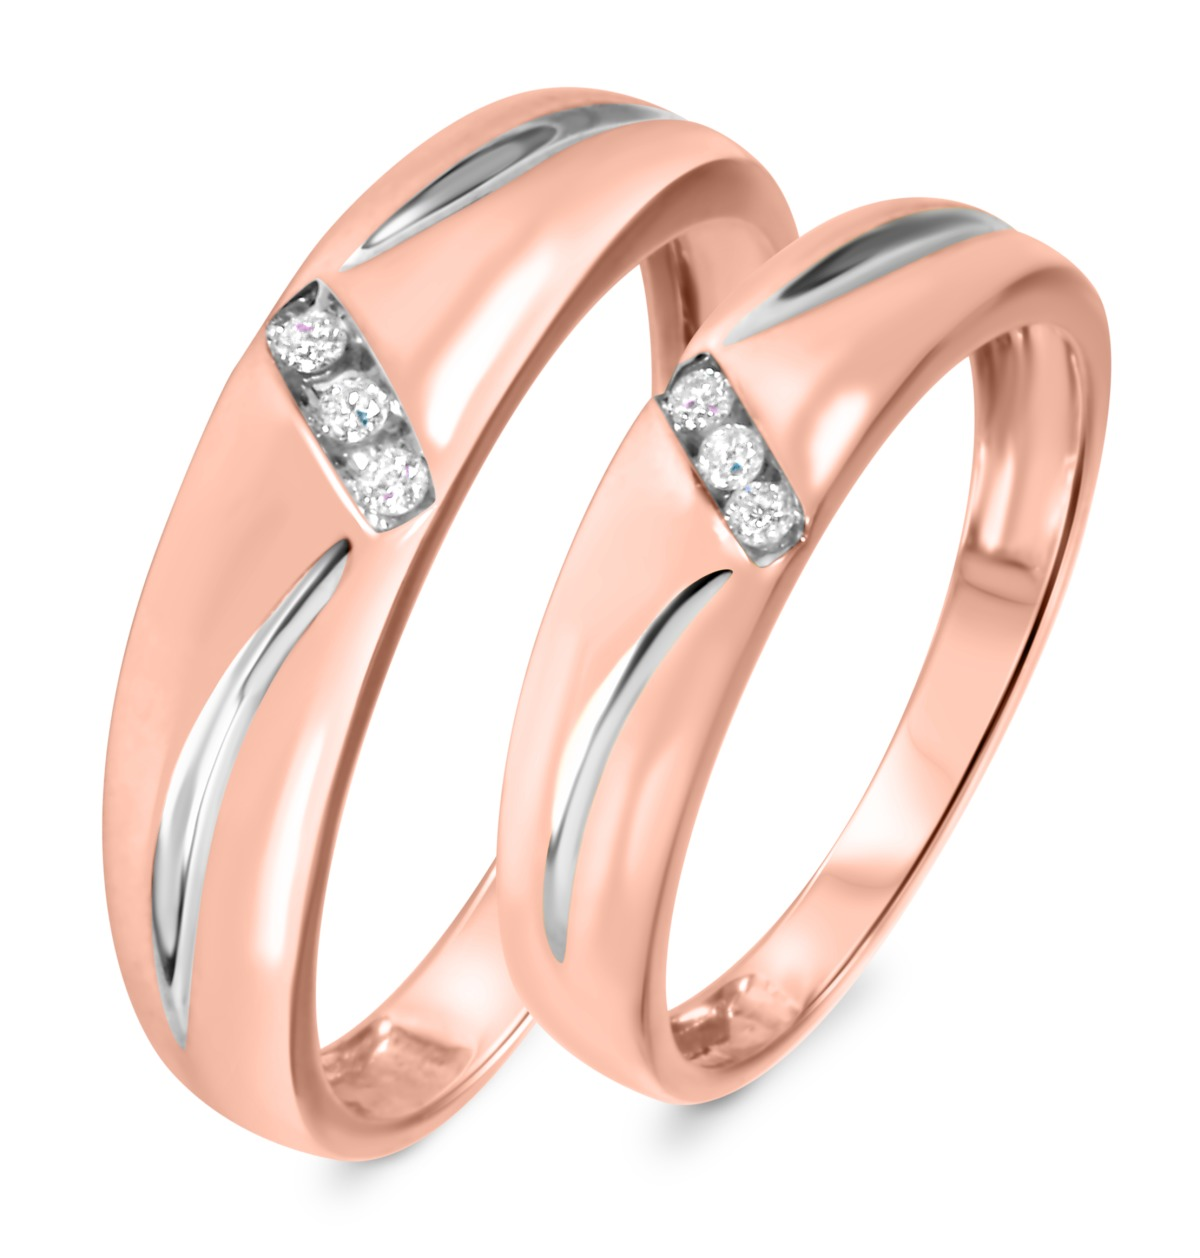 1/10 Carat T.W. Diamond His And Hers Wedding Band Set 14K Rose Gold